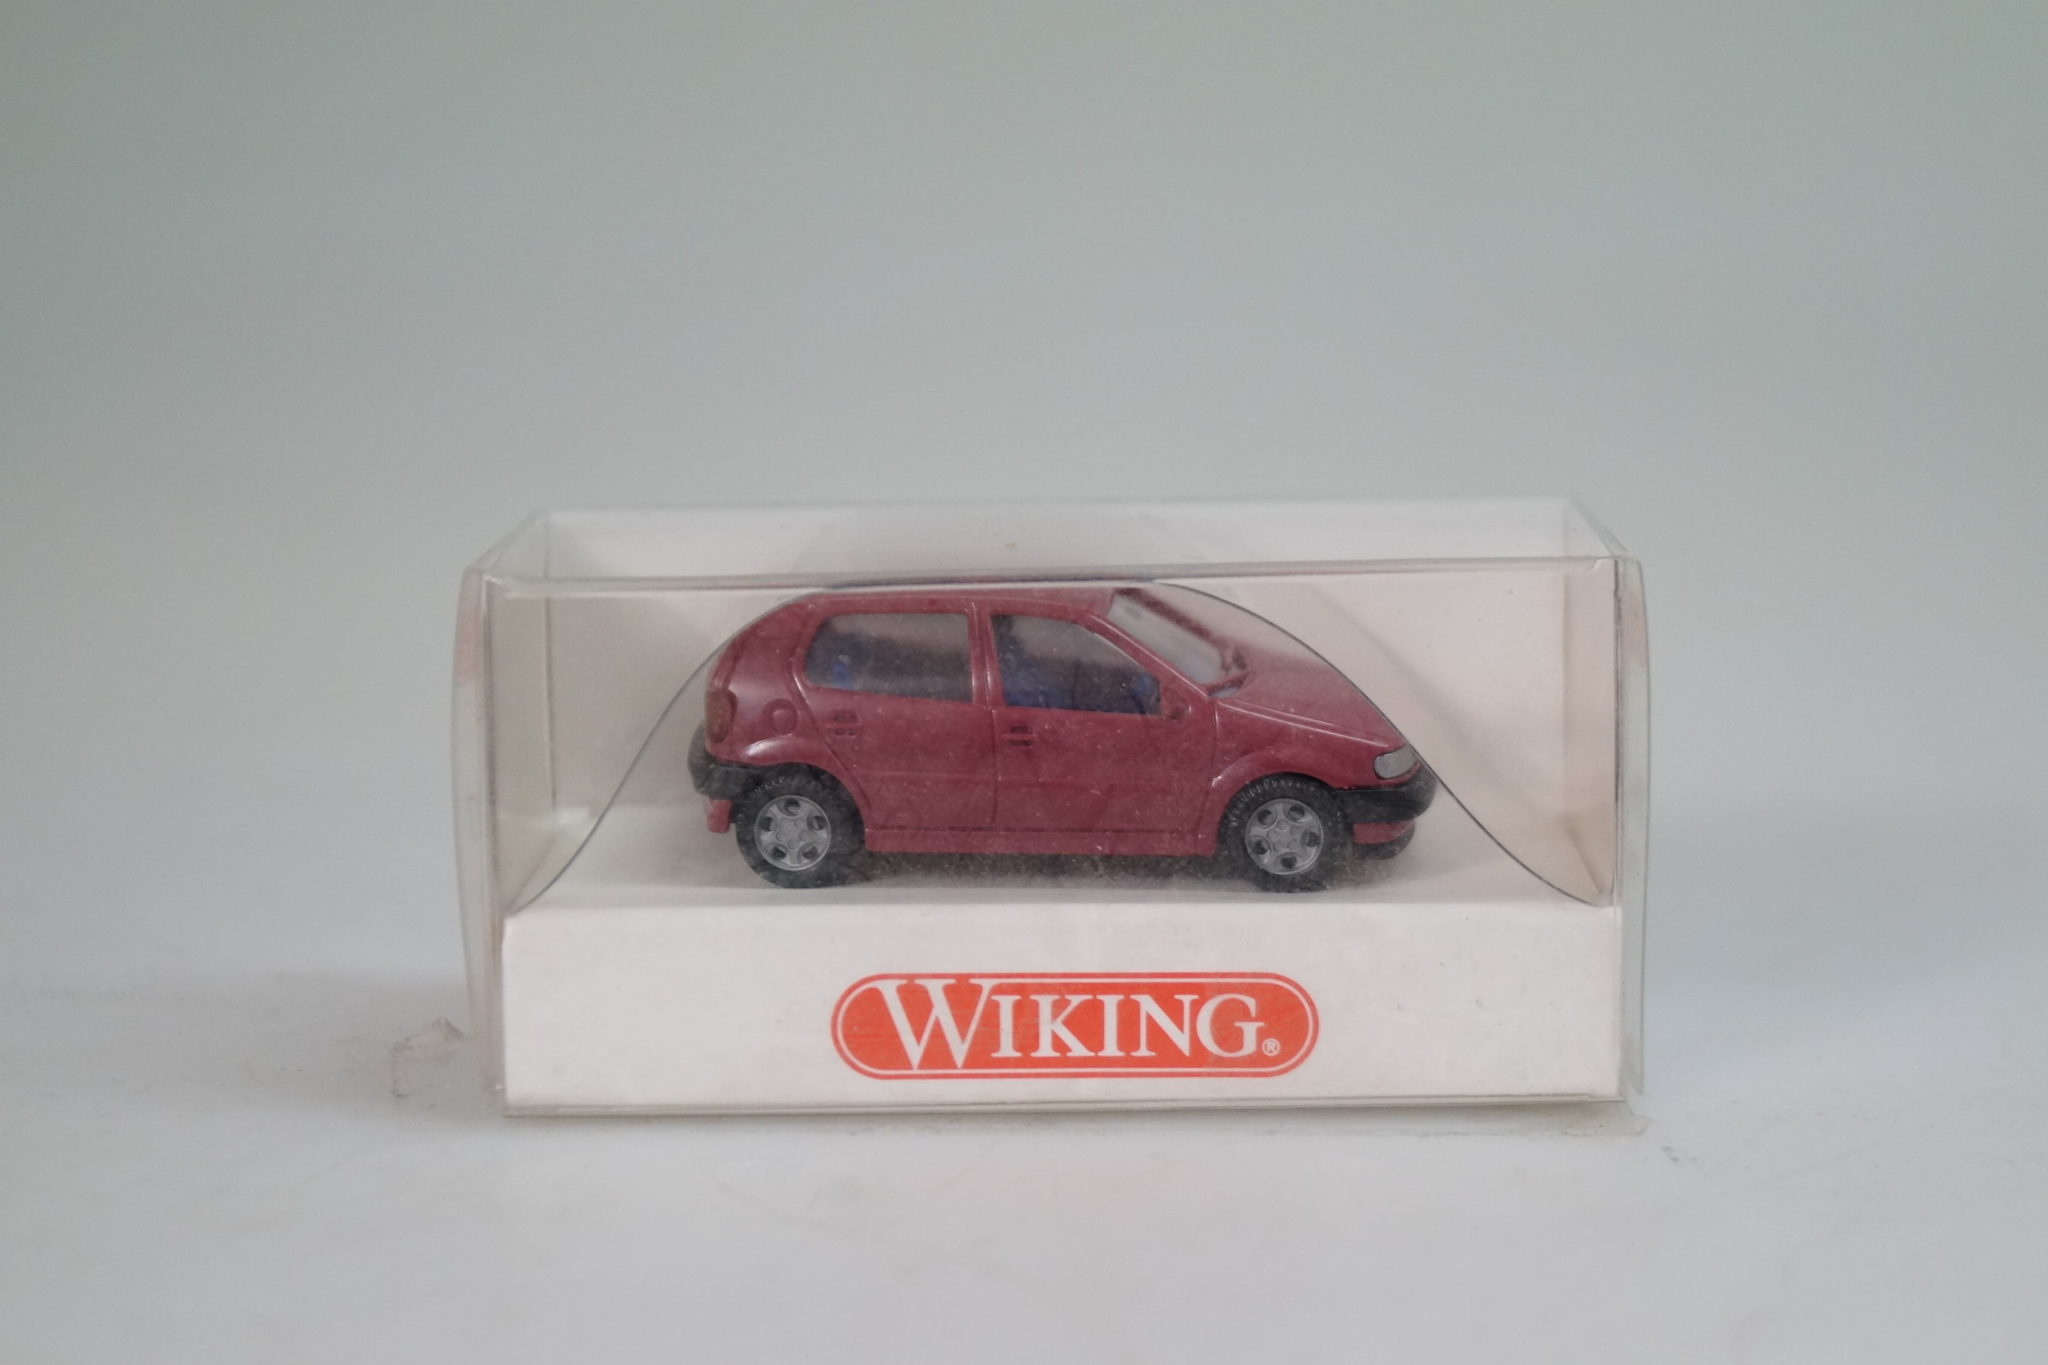 neu 1:87 Wiking 036 01 17 VW Polo lila